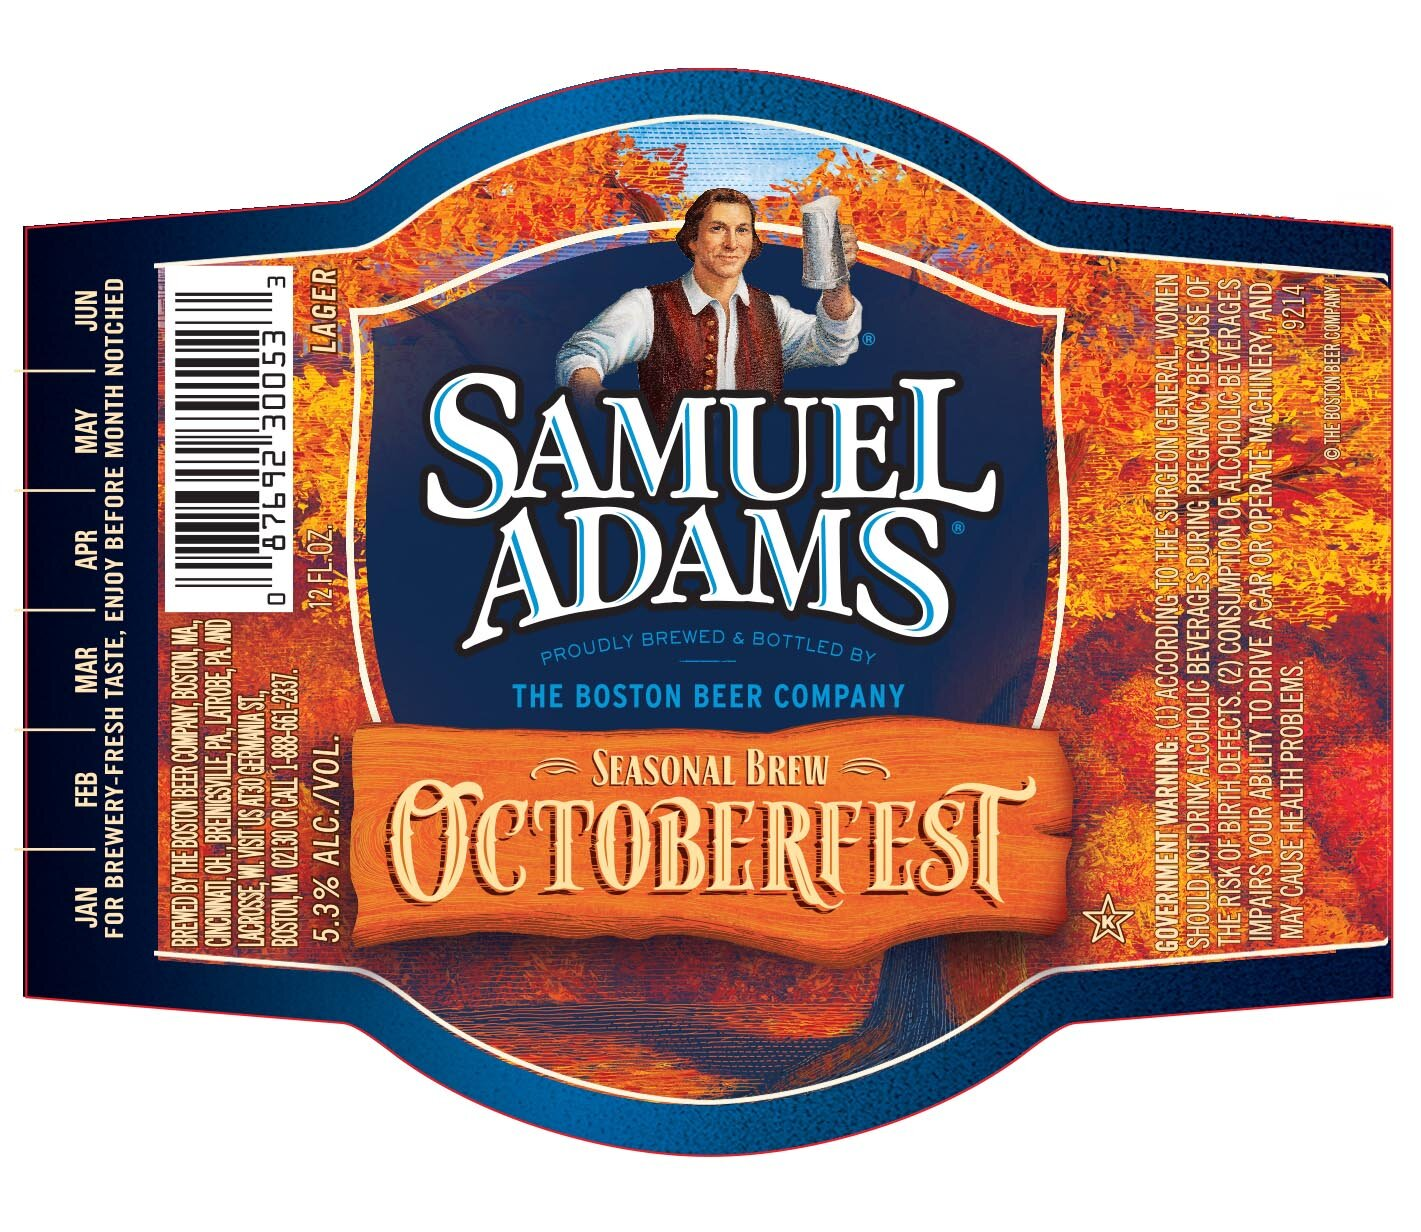 Sam Adams Octoberfest – 5.3% - In 1810, the Oktoberfest tradition was born when Munich celebrated the Crown Prince's wedding with a special beer and 16-day party. Our version of this classic style blends hearty malts for a deep, smooth flavor with notes of caramel creating a brew that's perfect for the season, or whatever you're celebrating.